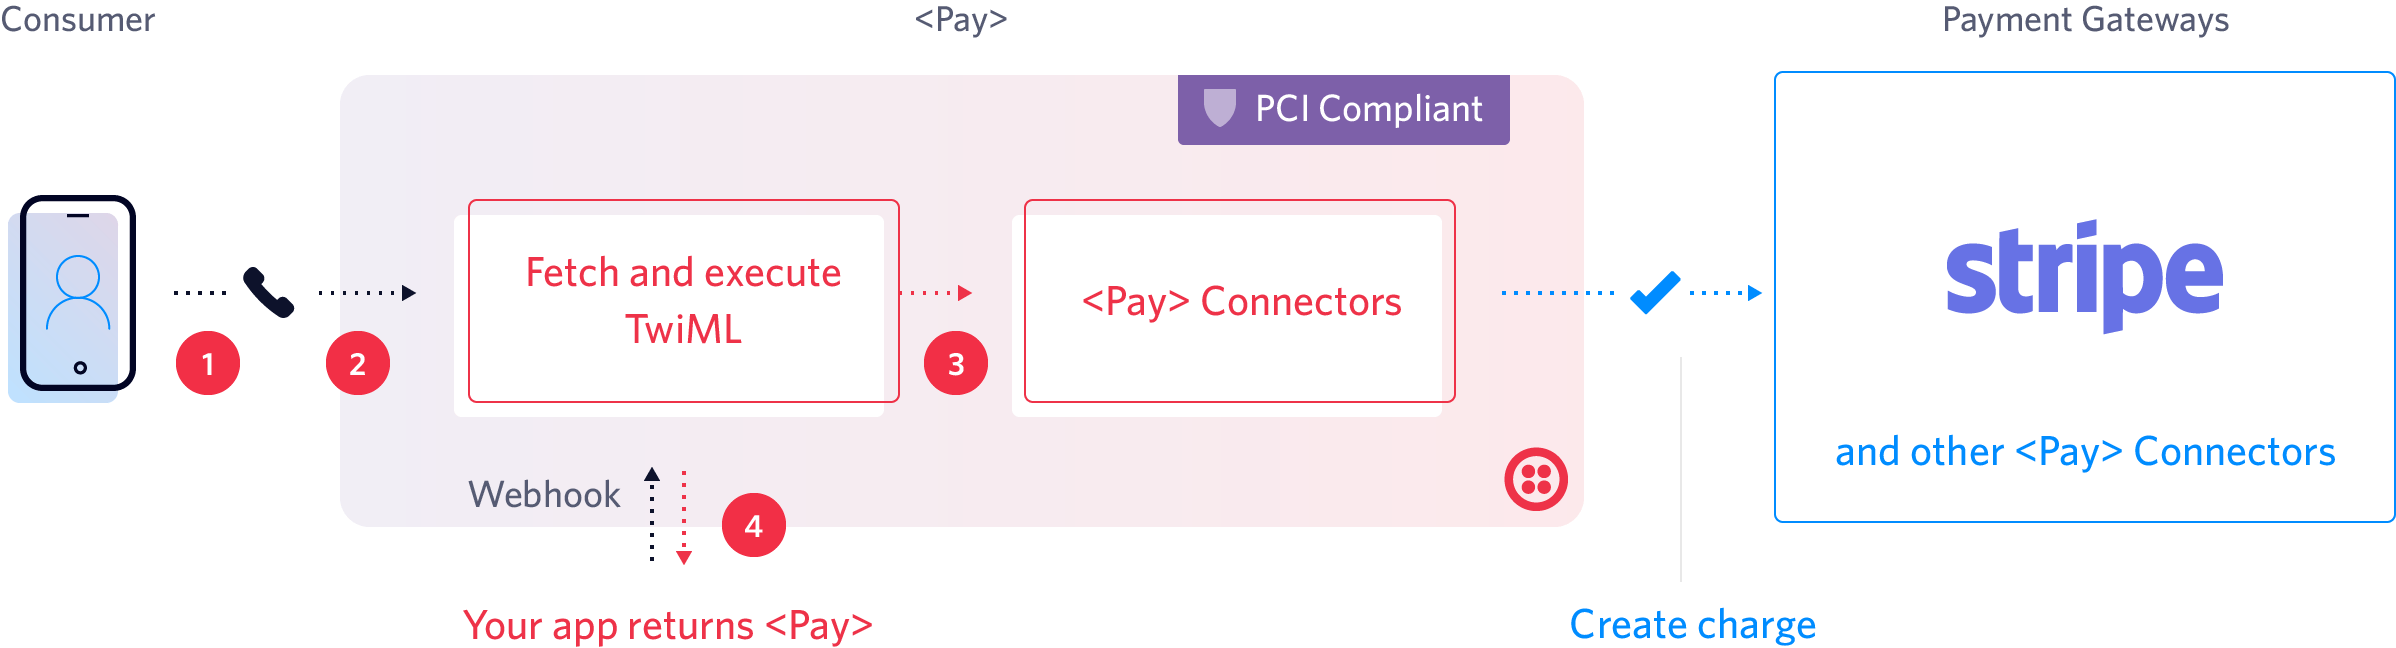 Build PCI-compliant payment workflows on a trusted cloud